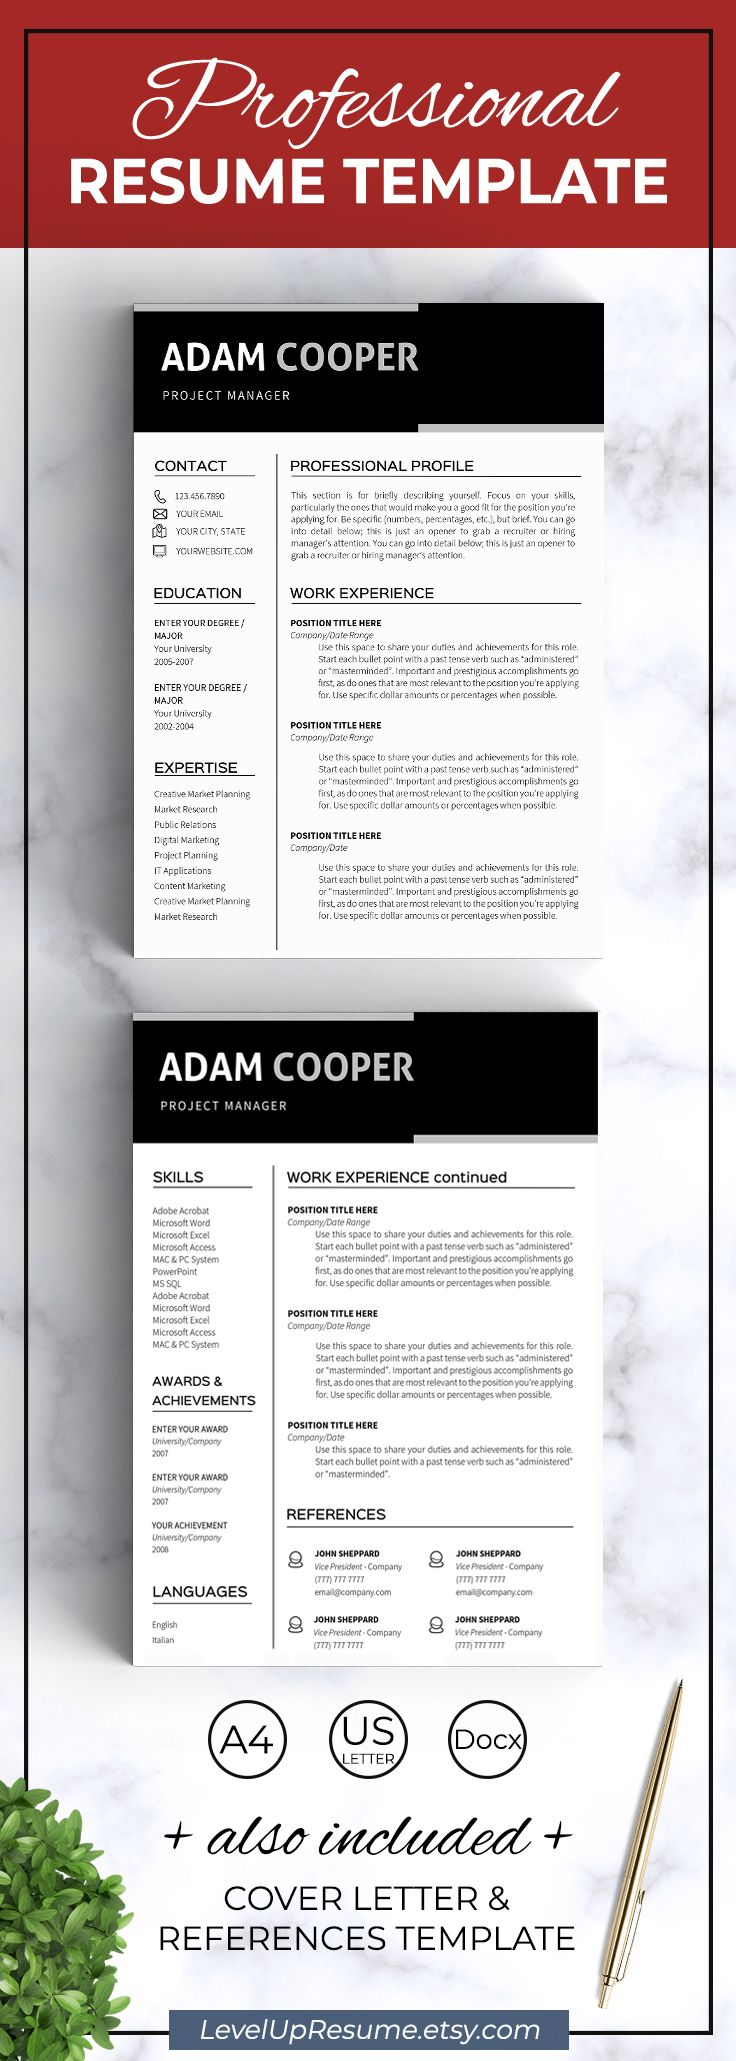 Modern resume template Professional resume design Career